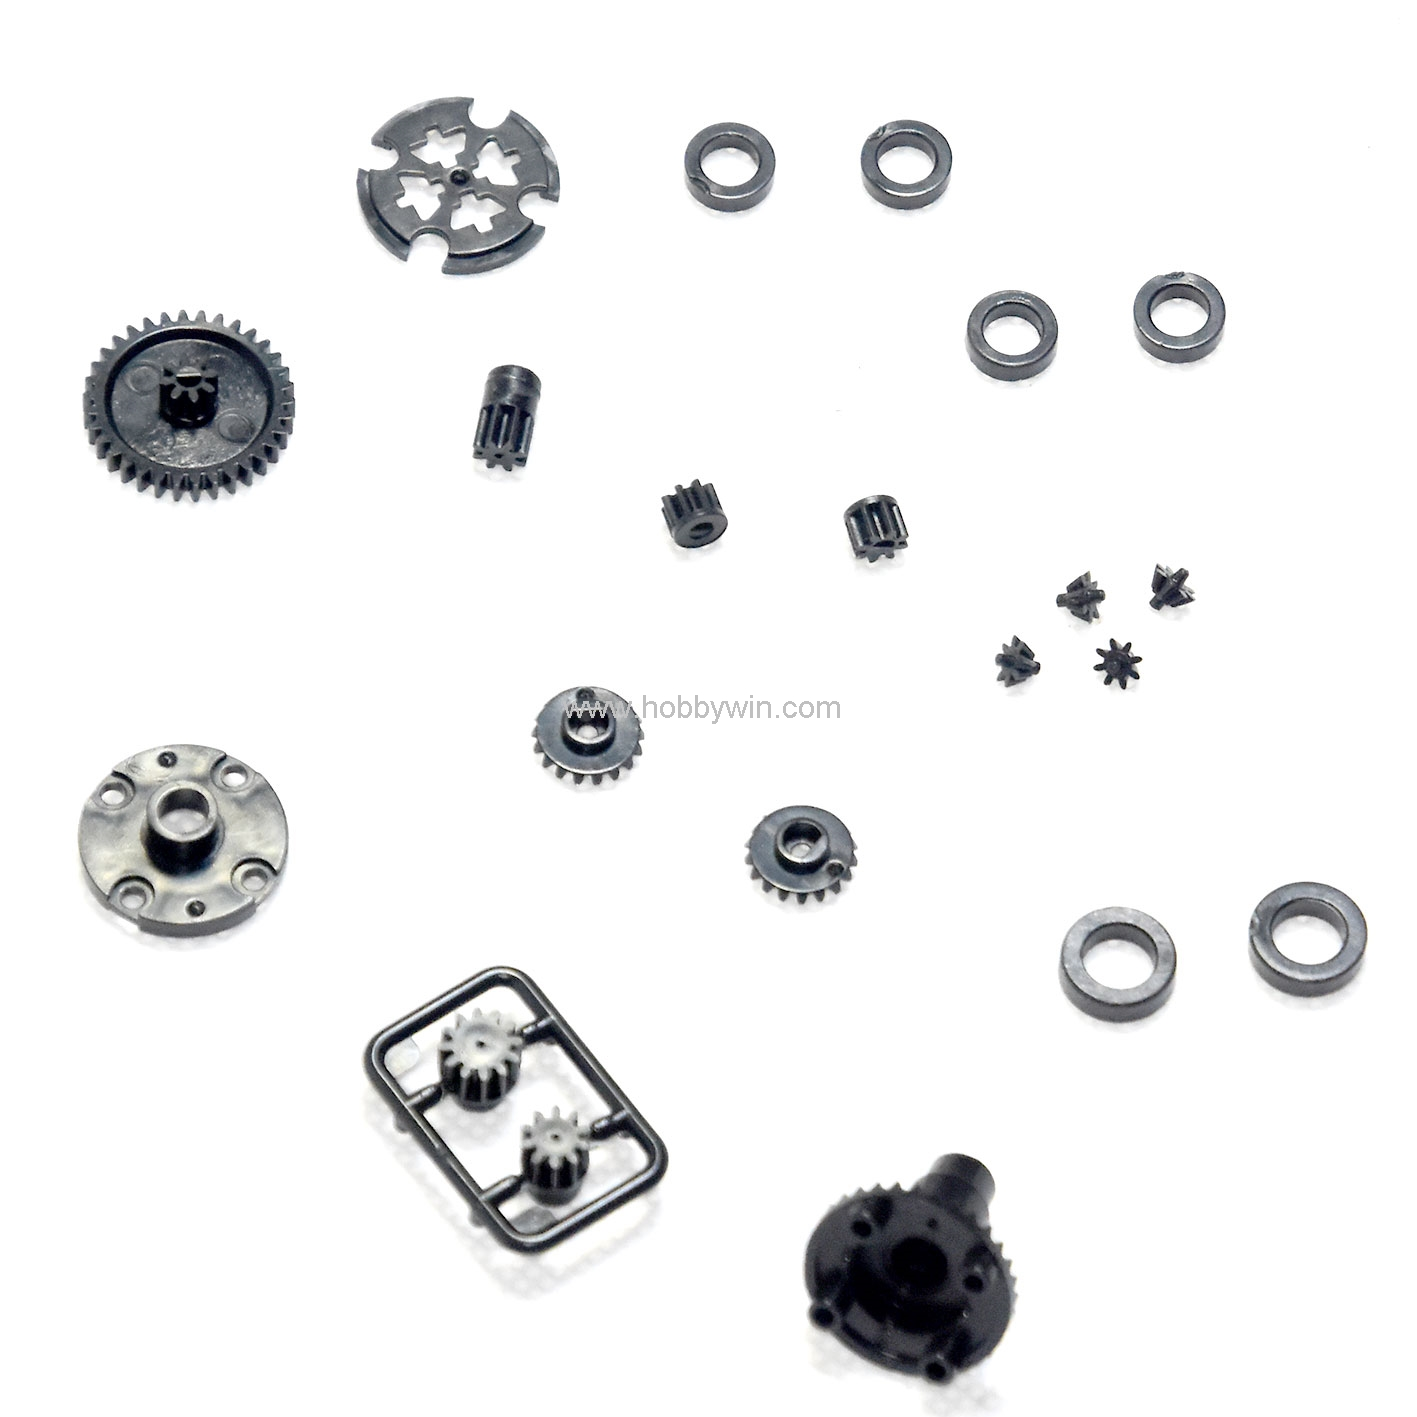 Hbx Part Gears Bushes For Haiboxing 1 24 Rc Model